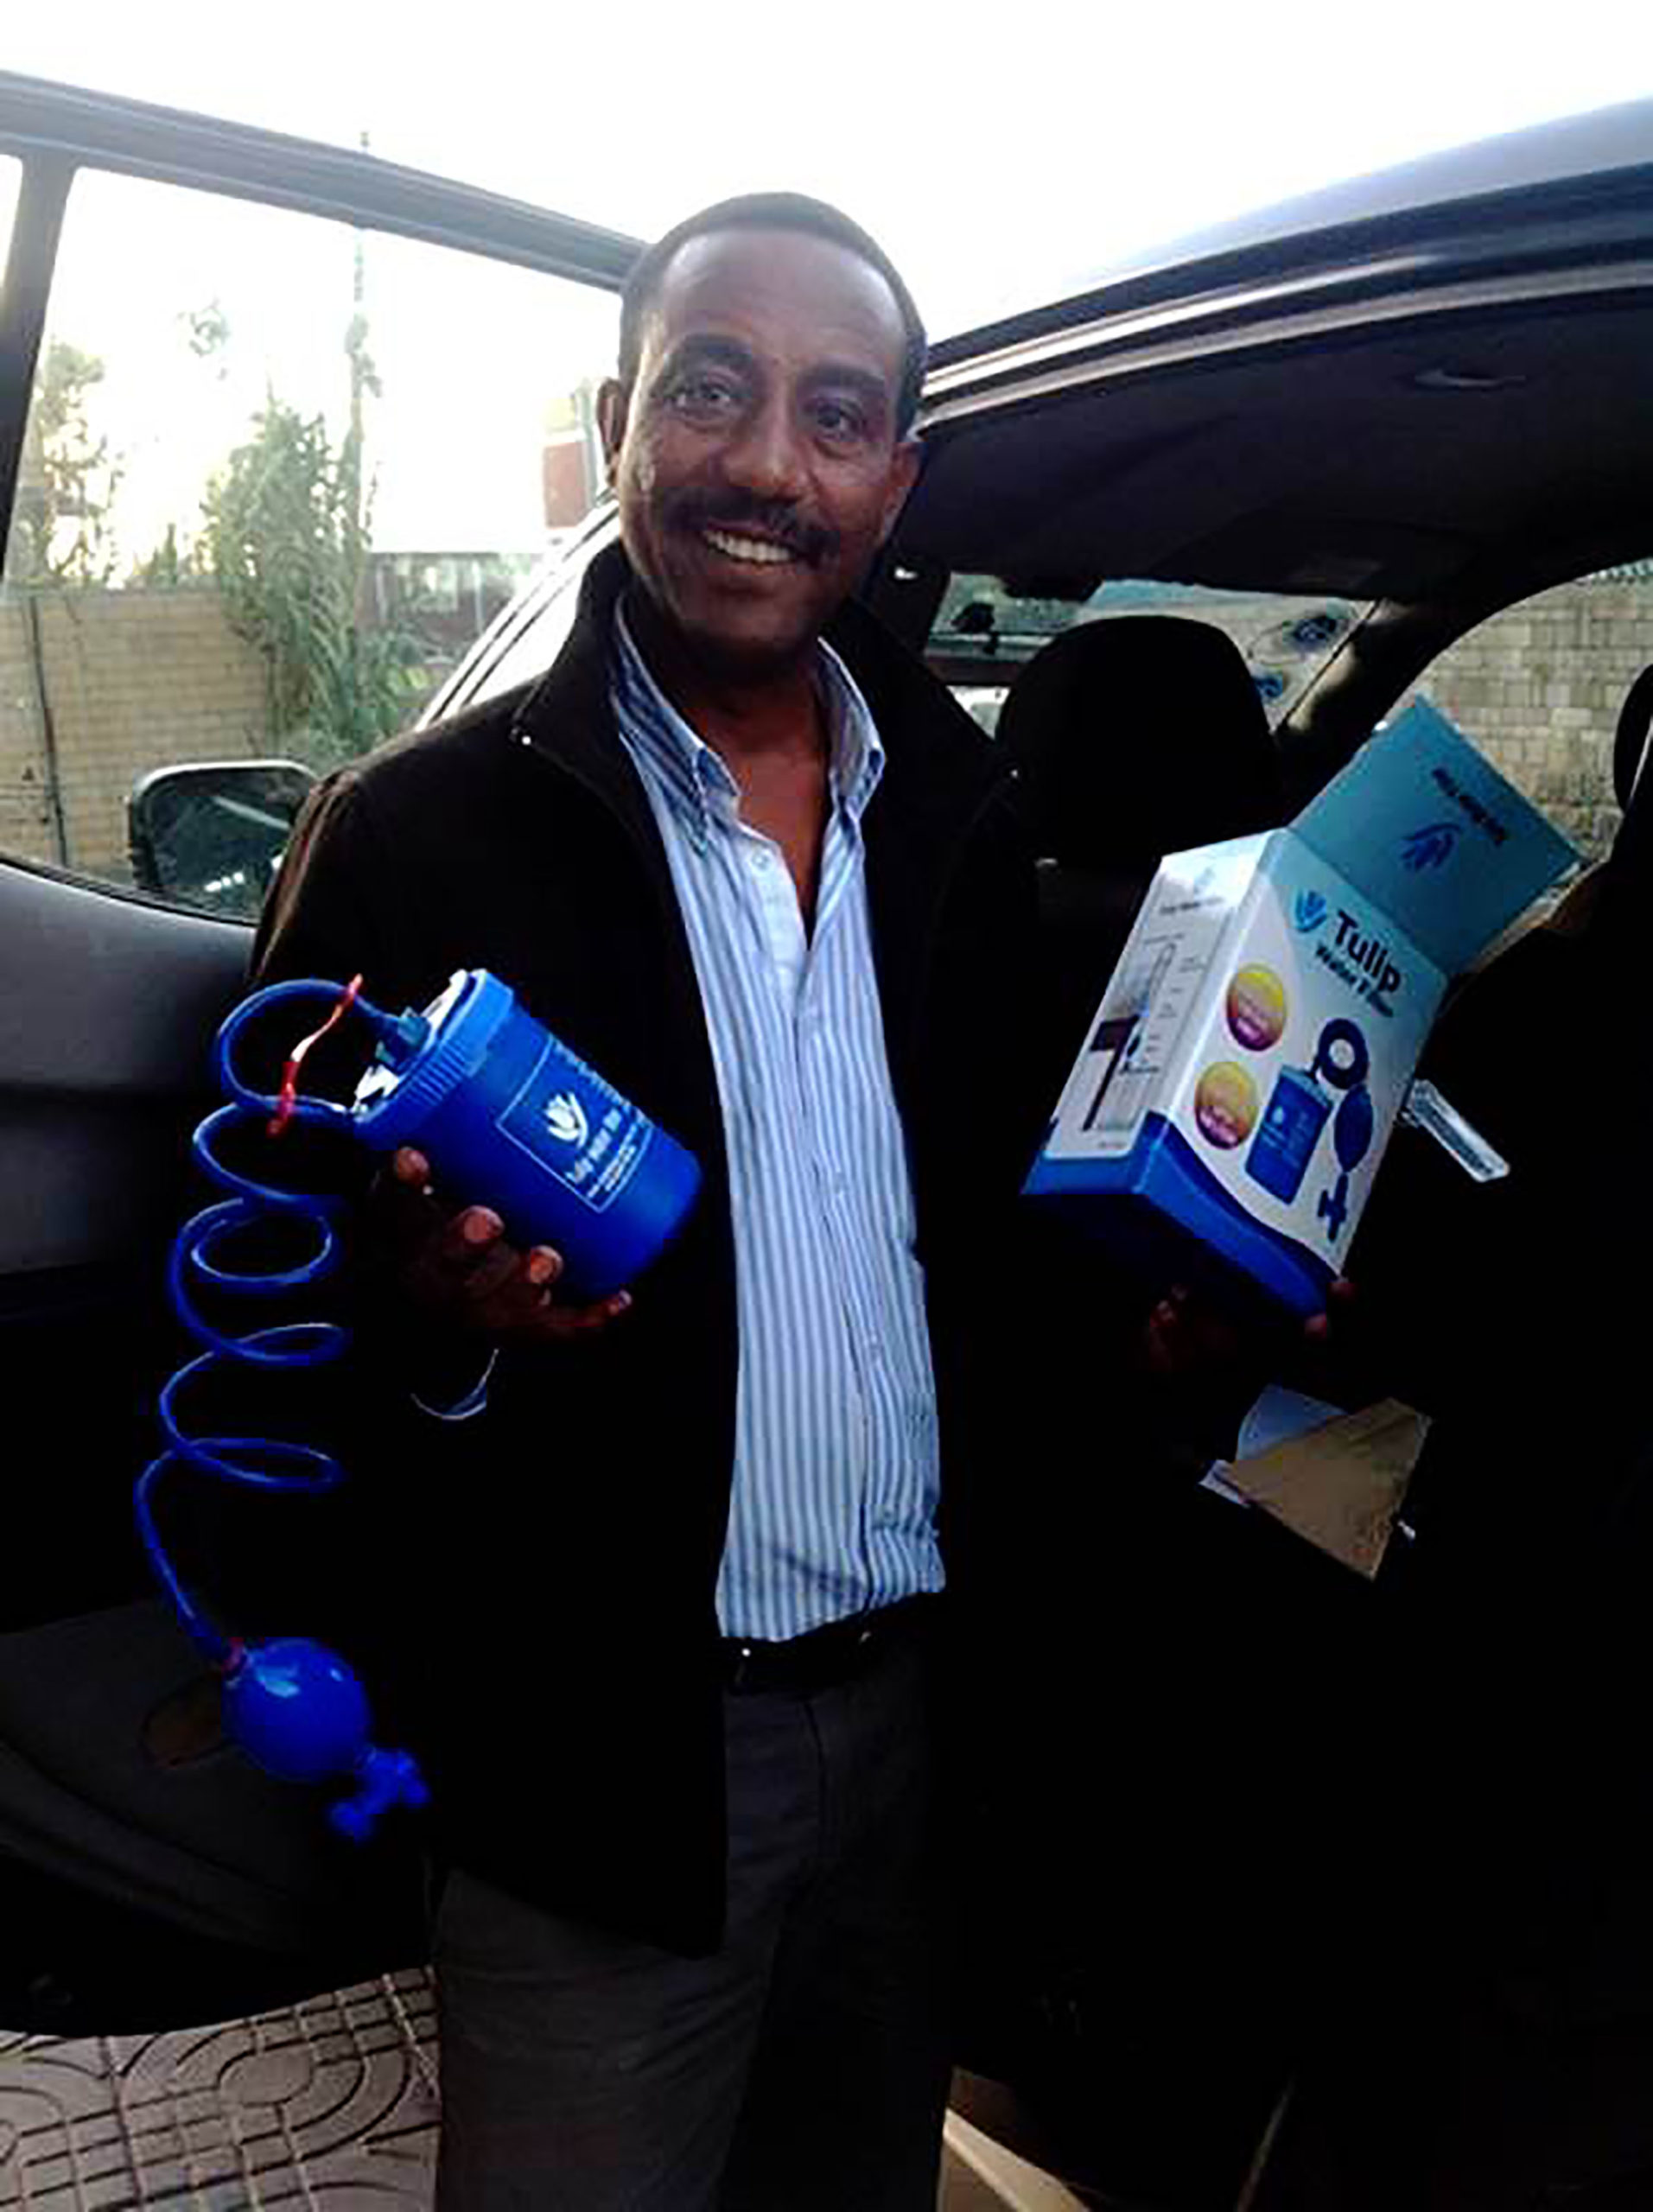 Getaw Mekonnen Cherinet founder of Tulip Addis Water Filter, standing by a car holding his ceramic water filters in Ethiopia